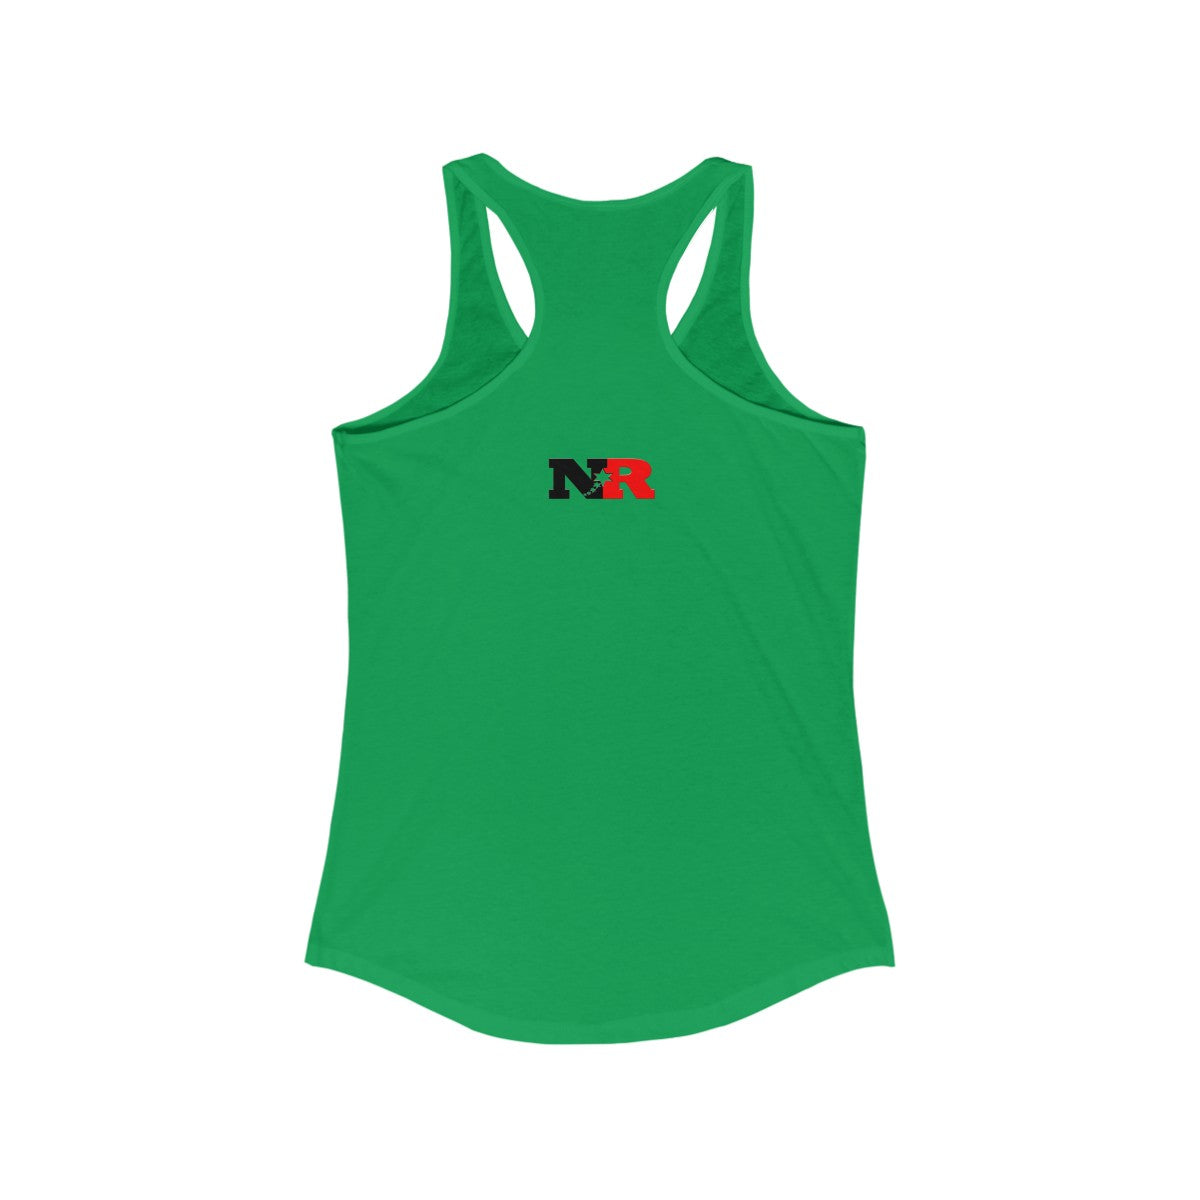 Women's Ideal Racerback Tank - Bespoke Generation